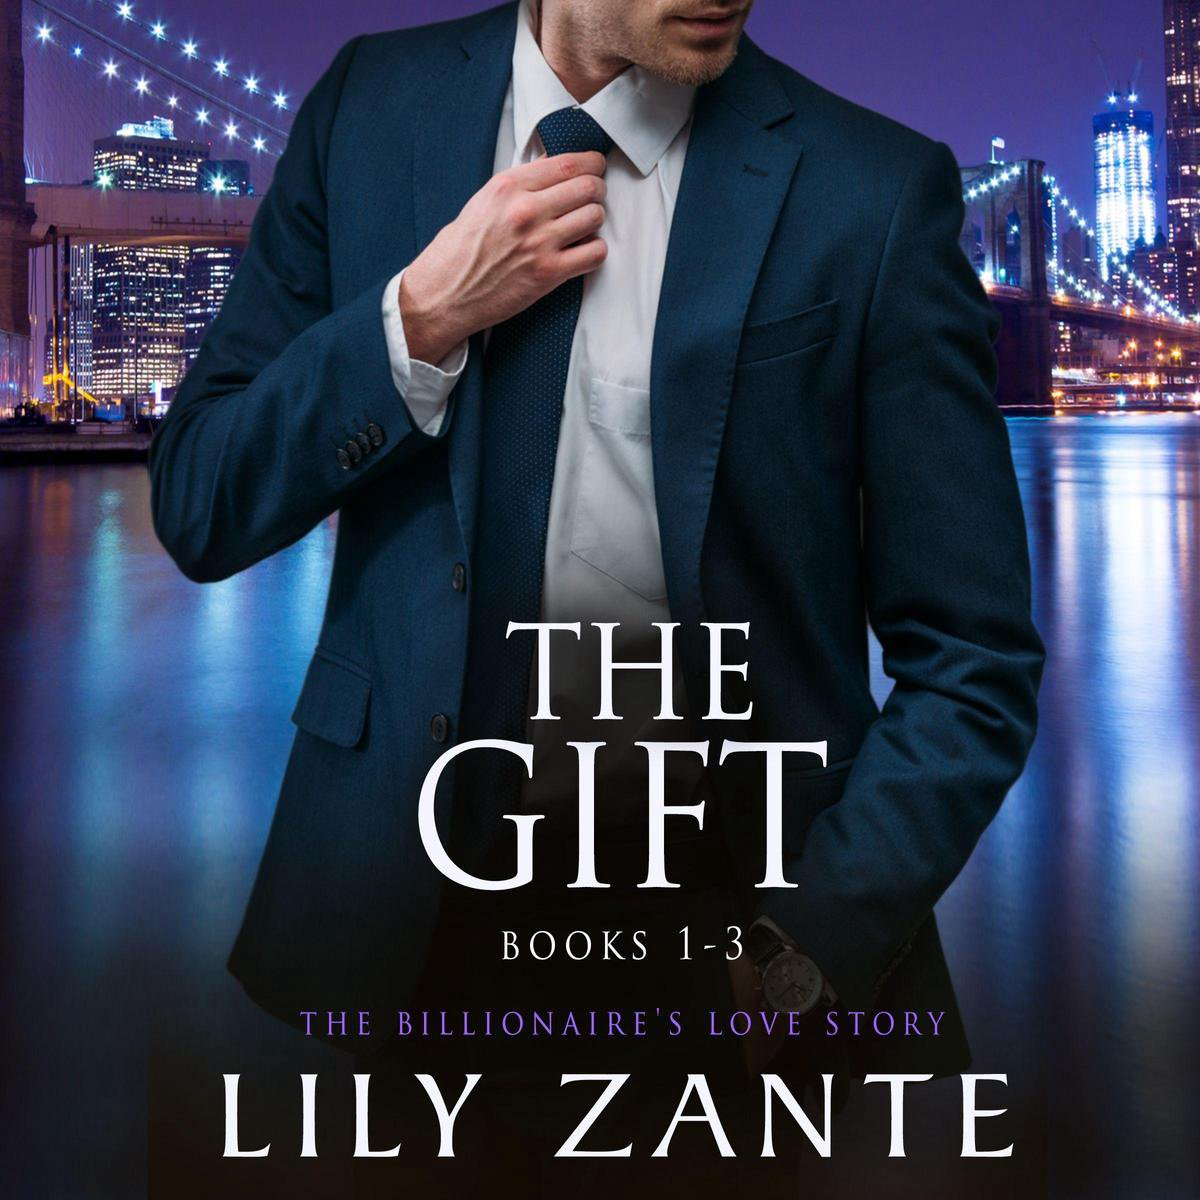 Gift (Books 1-3), The